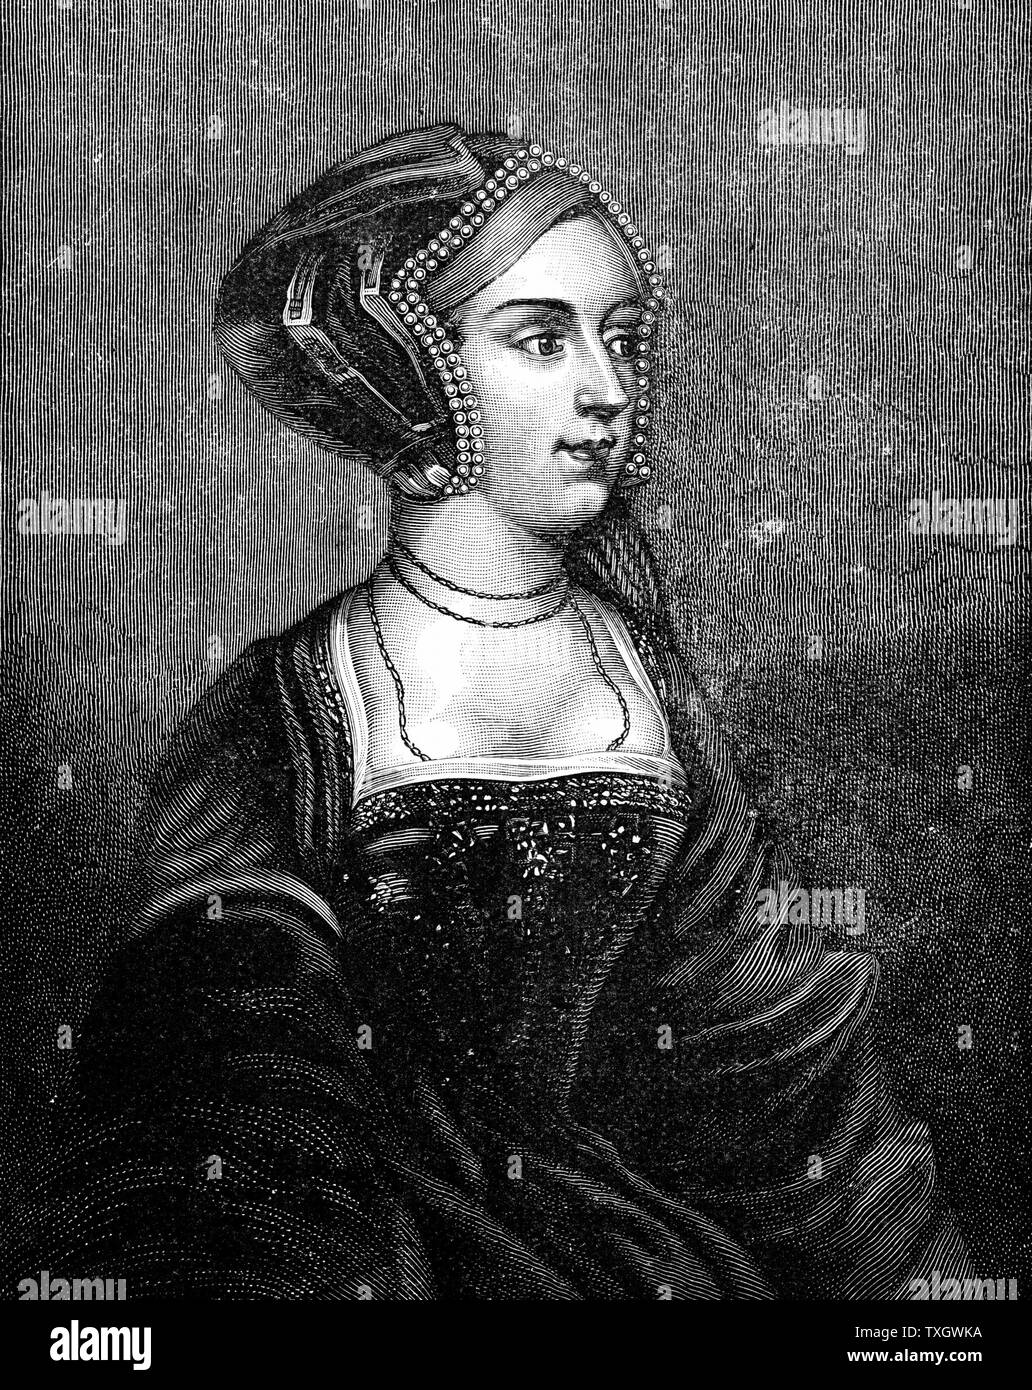 Anne Boleyn (c1504-36) second wife of Henry VIII of England, mother of Elizabeth I. Found guilty of high treason on grounds of adultery, charges almost certainly fabricated 19th century  Engraving after Holbein - Stock Image